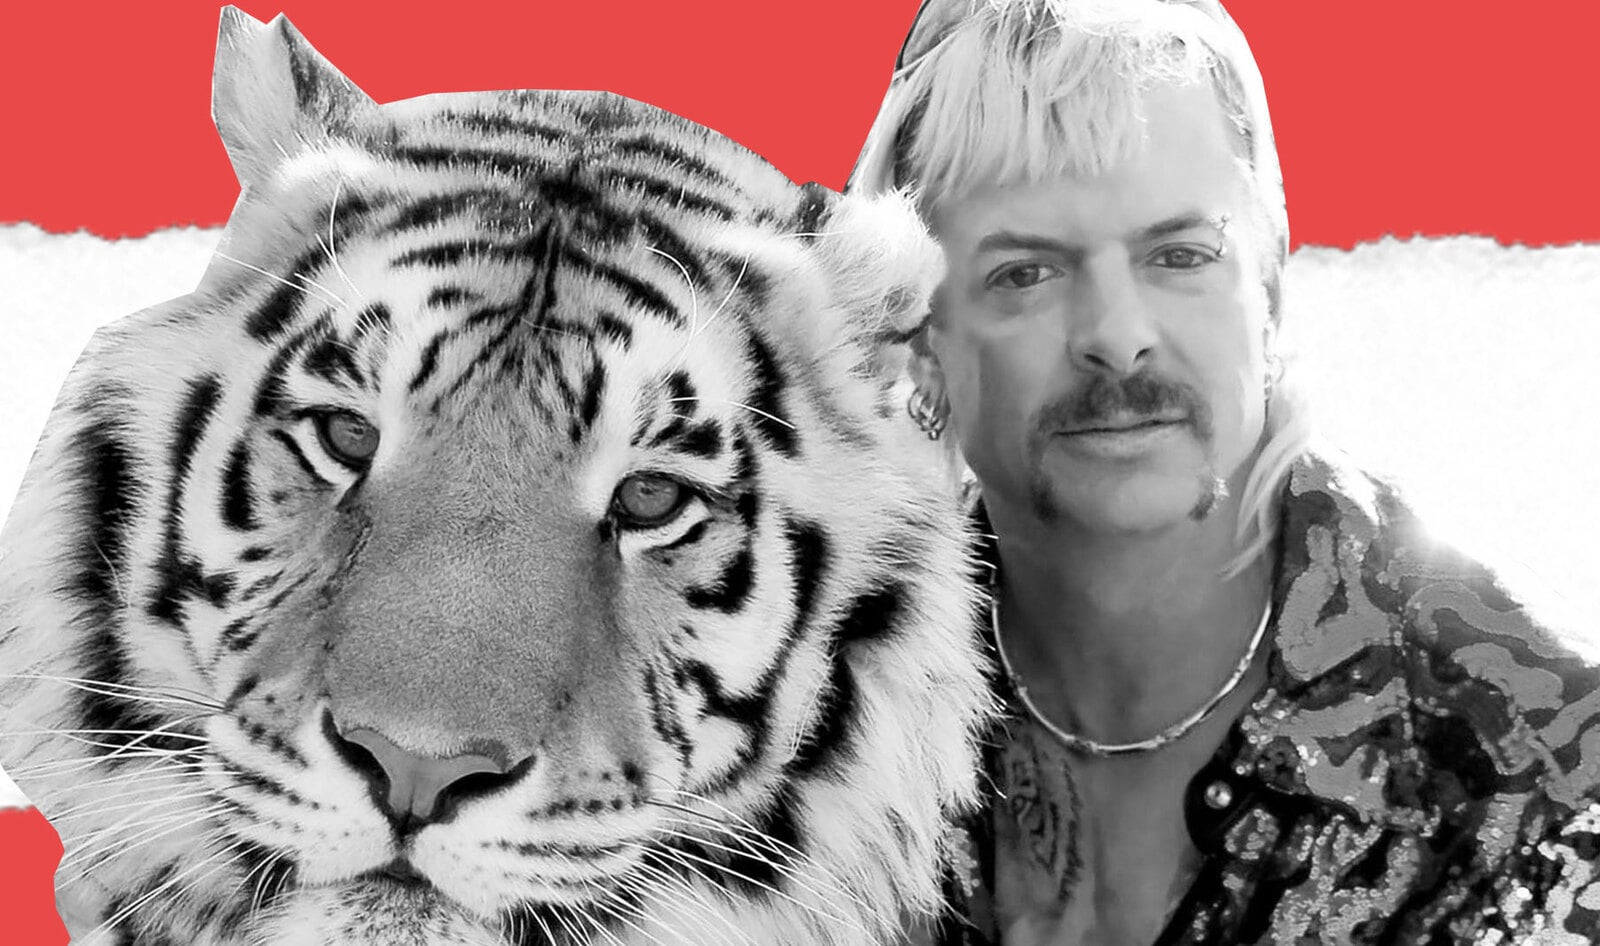 New Undercover Footage Shows <i>Tiger King</i> Stars Brutally Abusing Animals&nbsp;